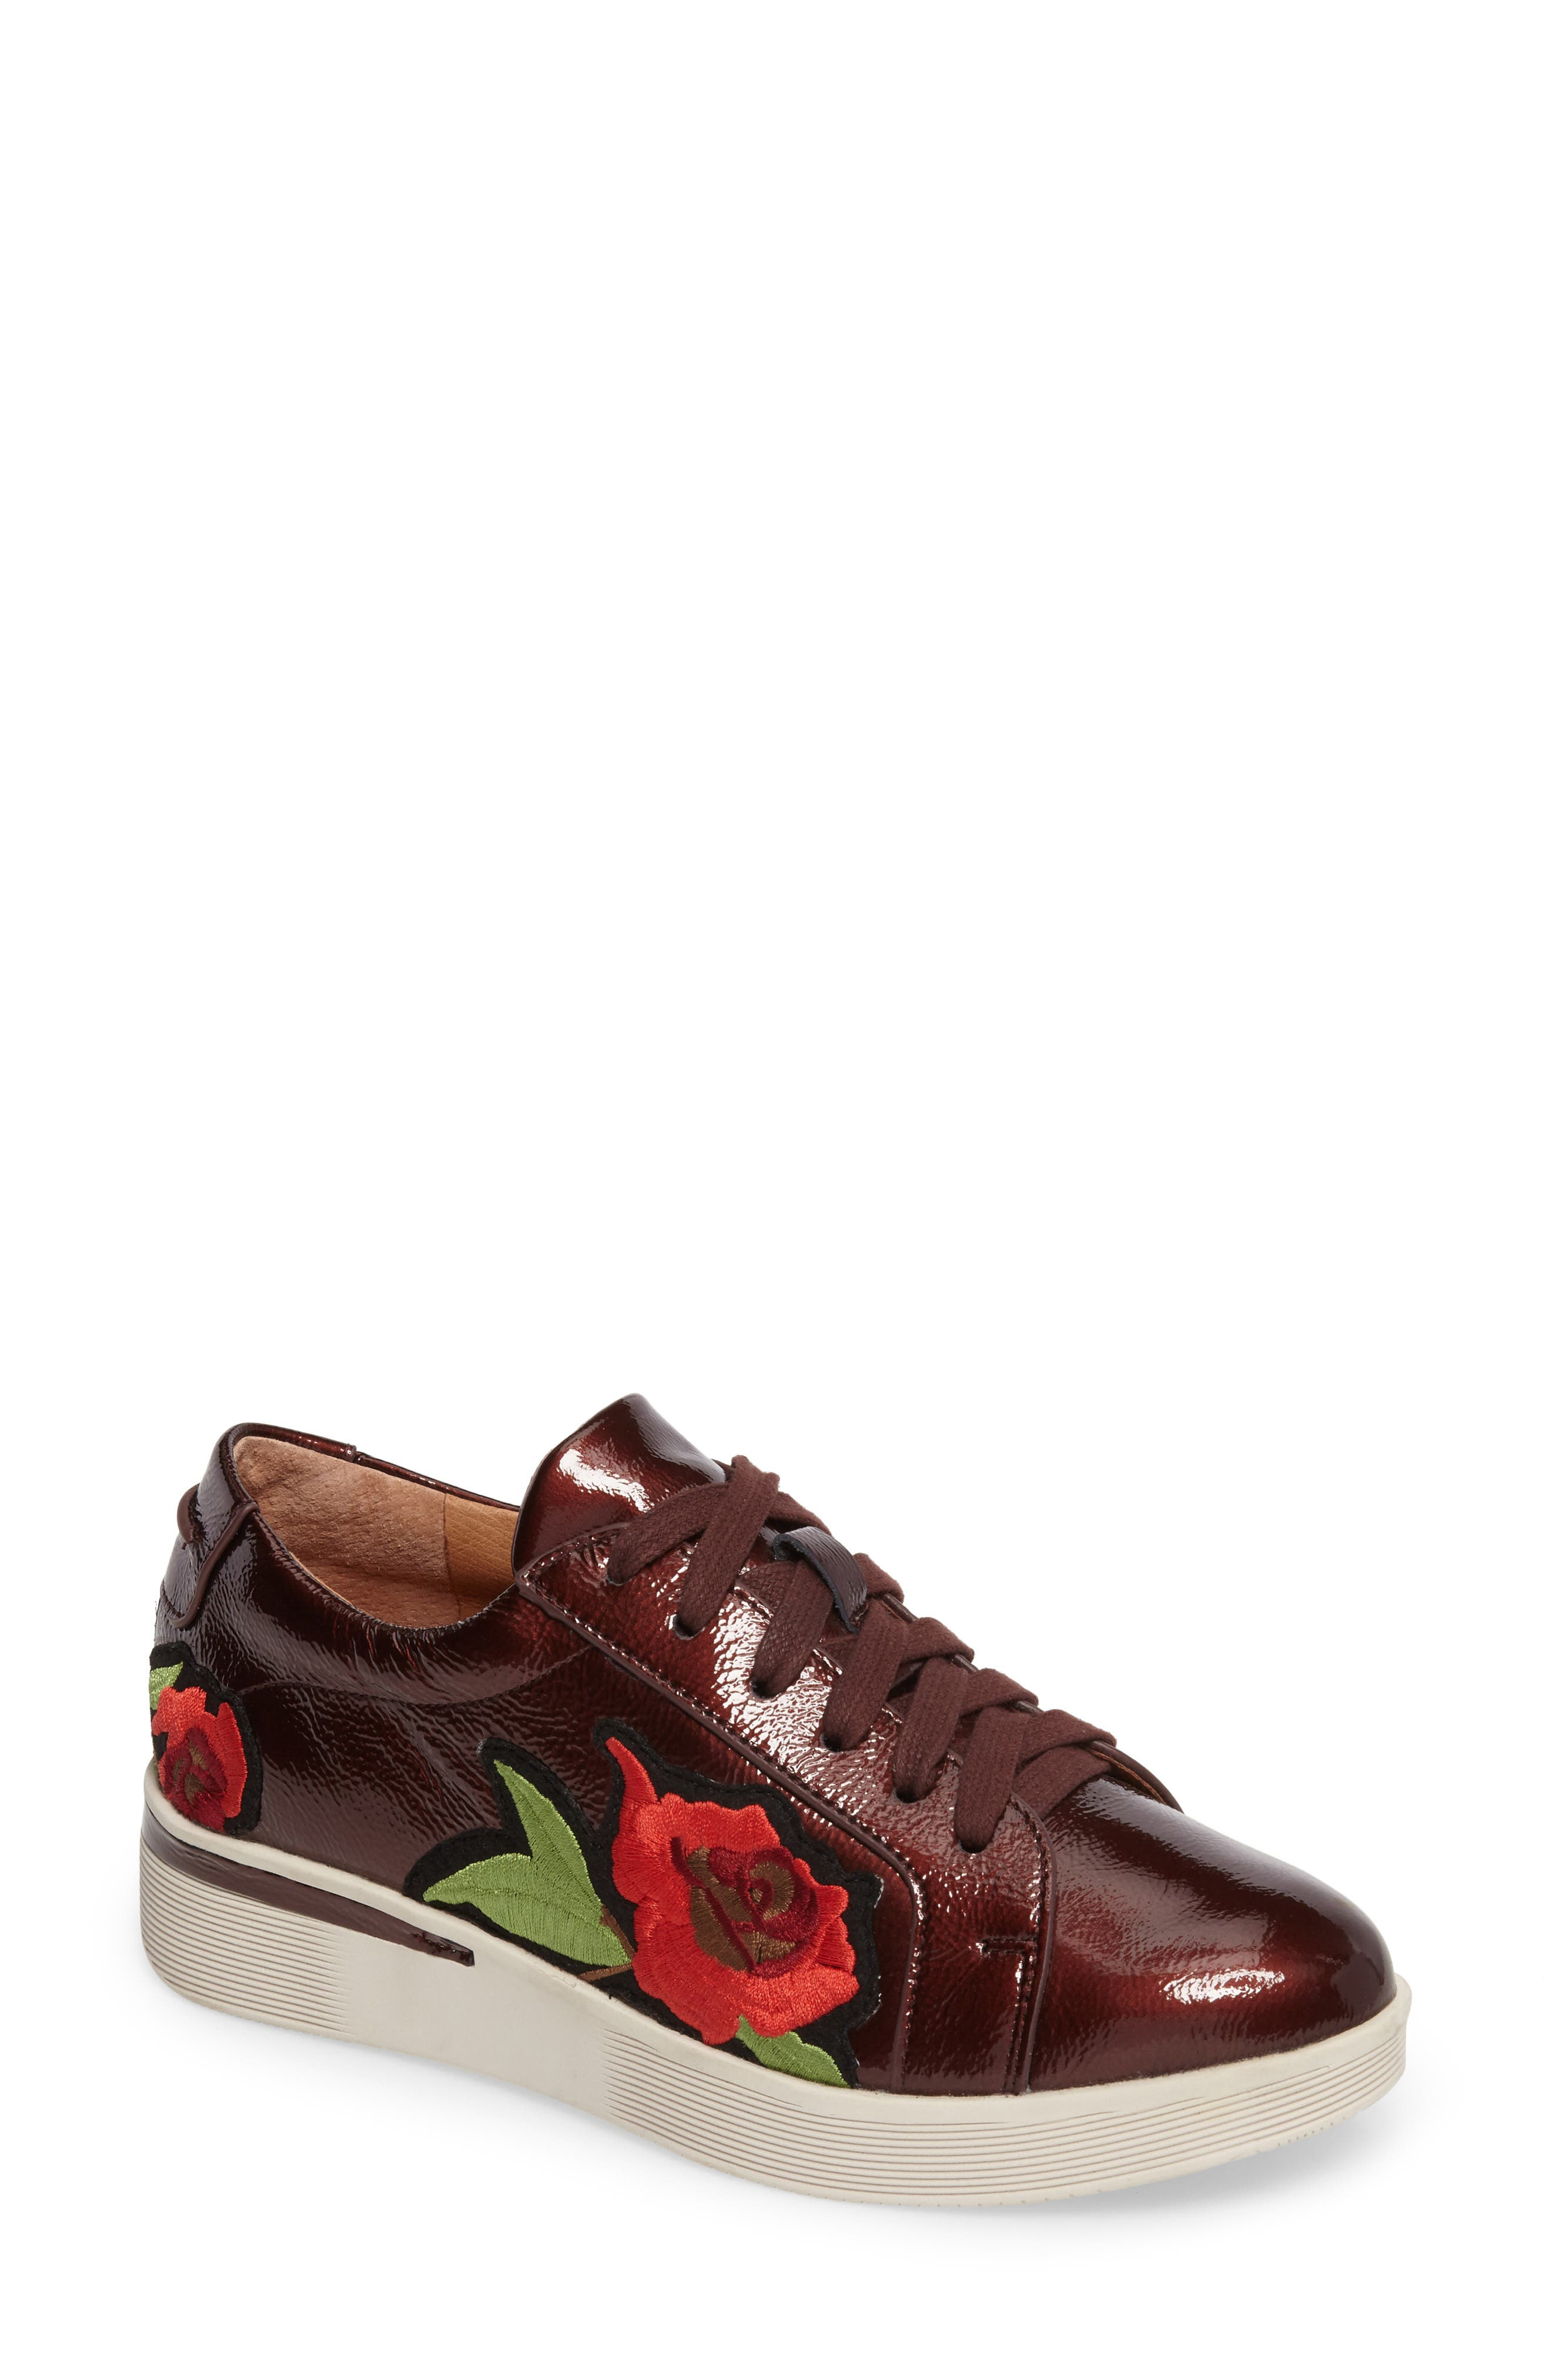 Gentle Soles Haddie Rose Sneaker,                         Main,                         color, Wine Patent Leather